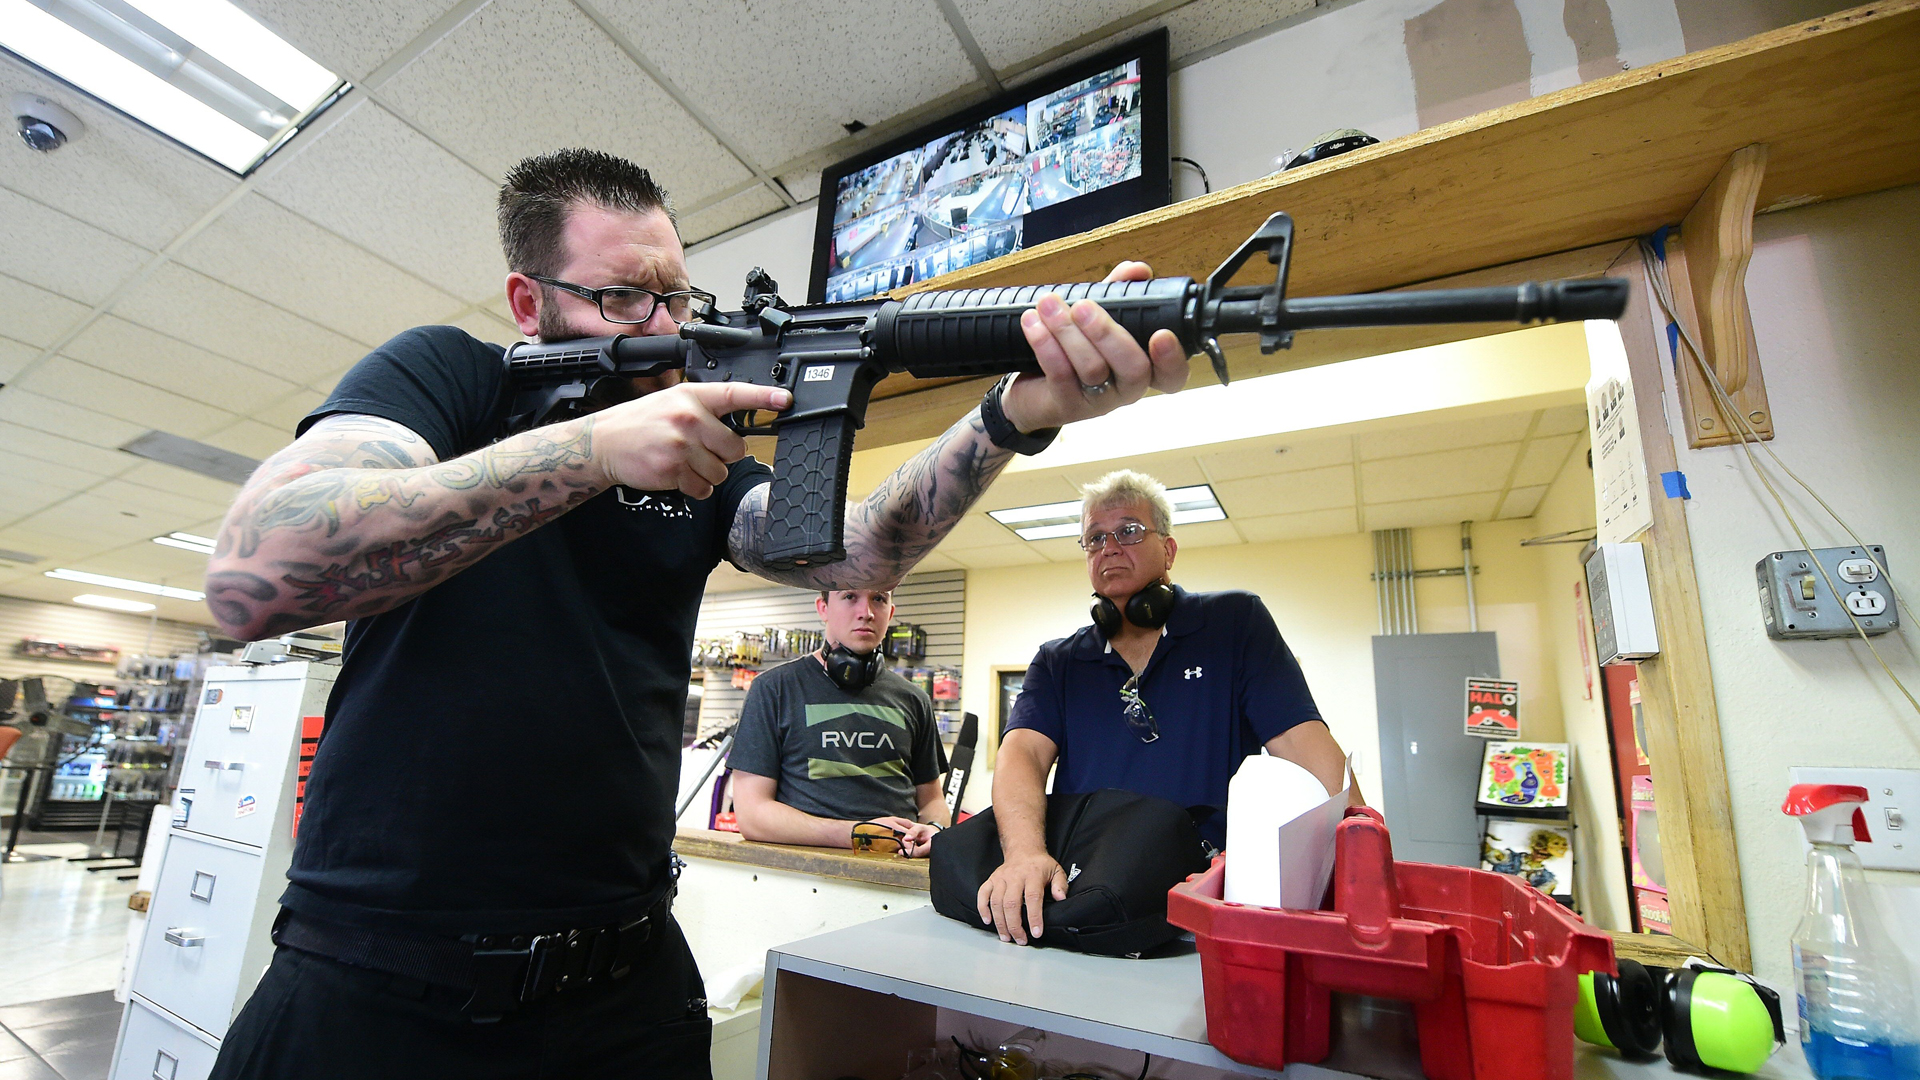 LAX Firing Range employee Tommy Bushnell demonstrates how to use an AR15 rifle to gun enthusiasts waiting to shoot at targets in Inglewood, California on September 7, 2016. (Credit: Frederic J. Brown/AFP/Getty Images)